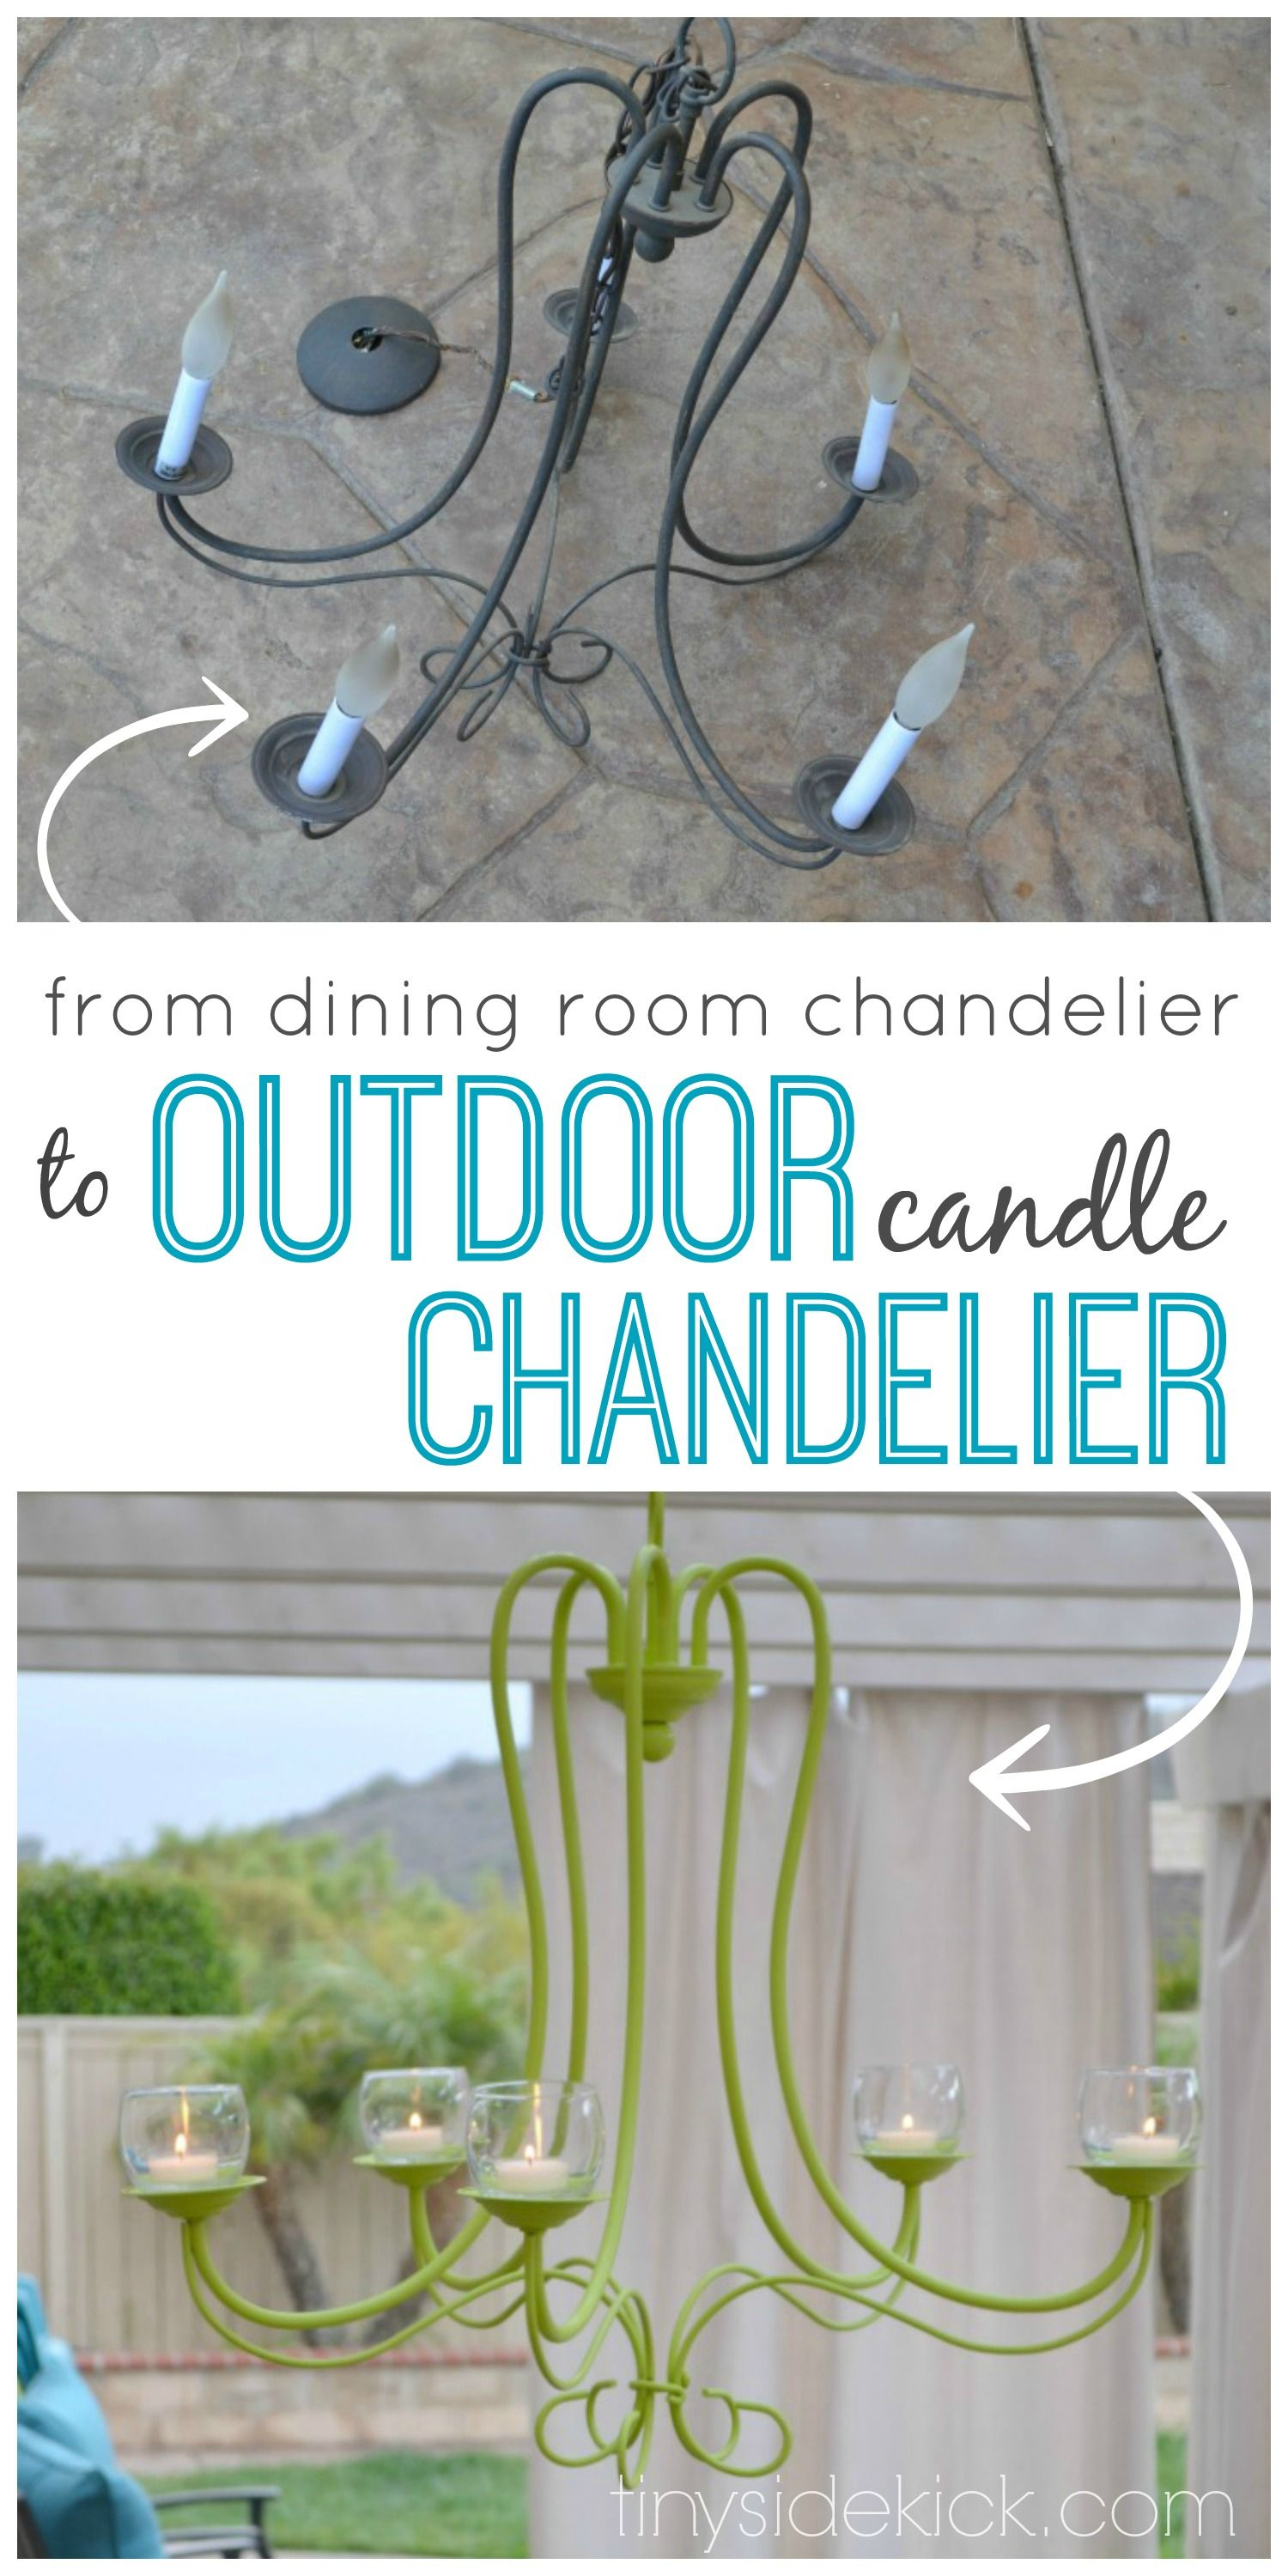 Diy outdoor chandelier outdoor chandelier outdoor living rooms diy outdoor chandelier progress in the outdoor living room arubaitofo Images